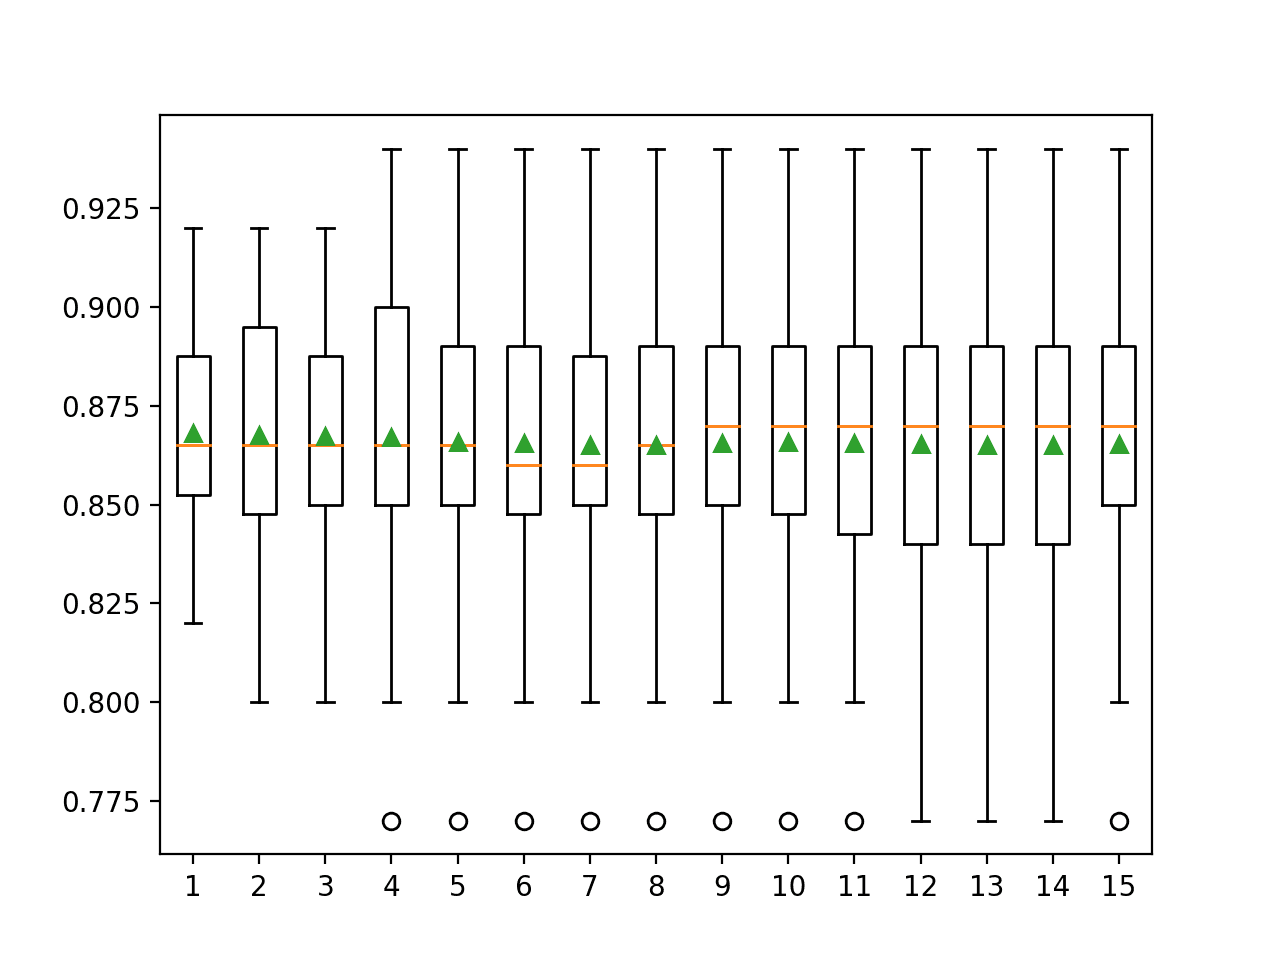 Box and Whisker Plots of Classification Accuracy vs Repeats for k-Fold Cross-Validation